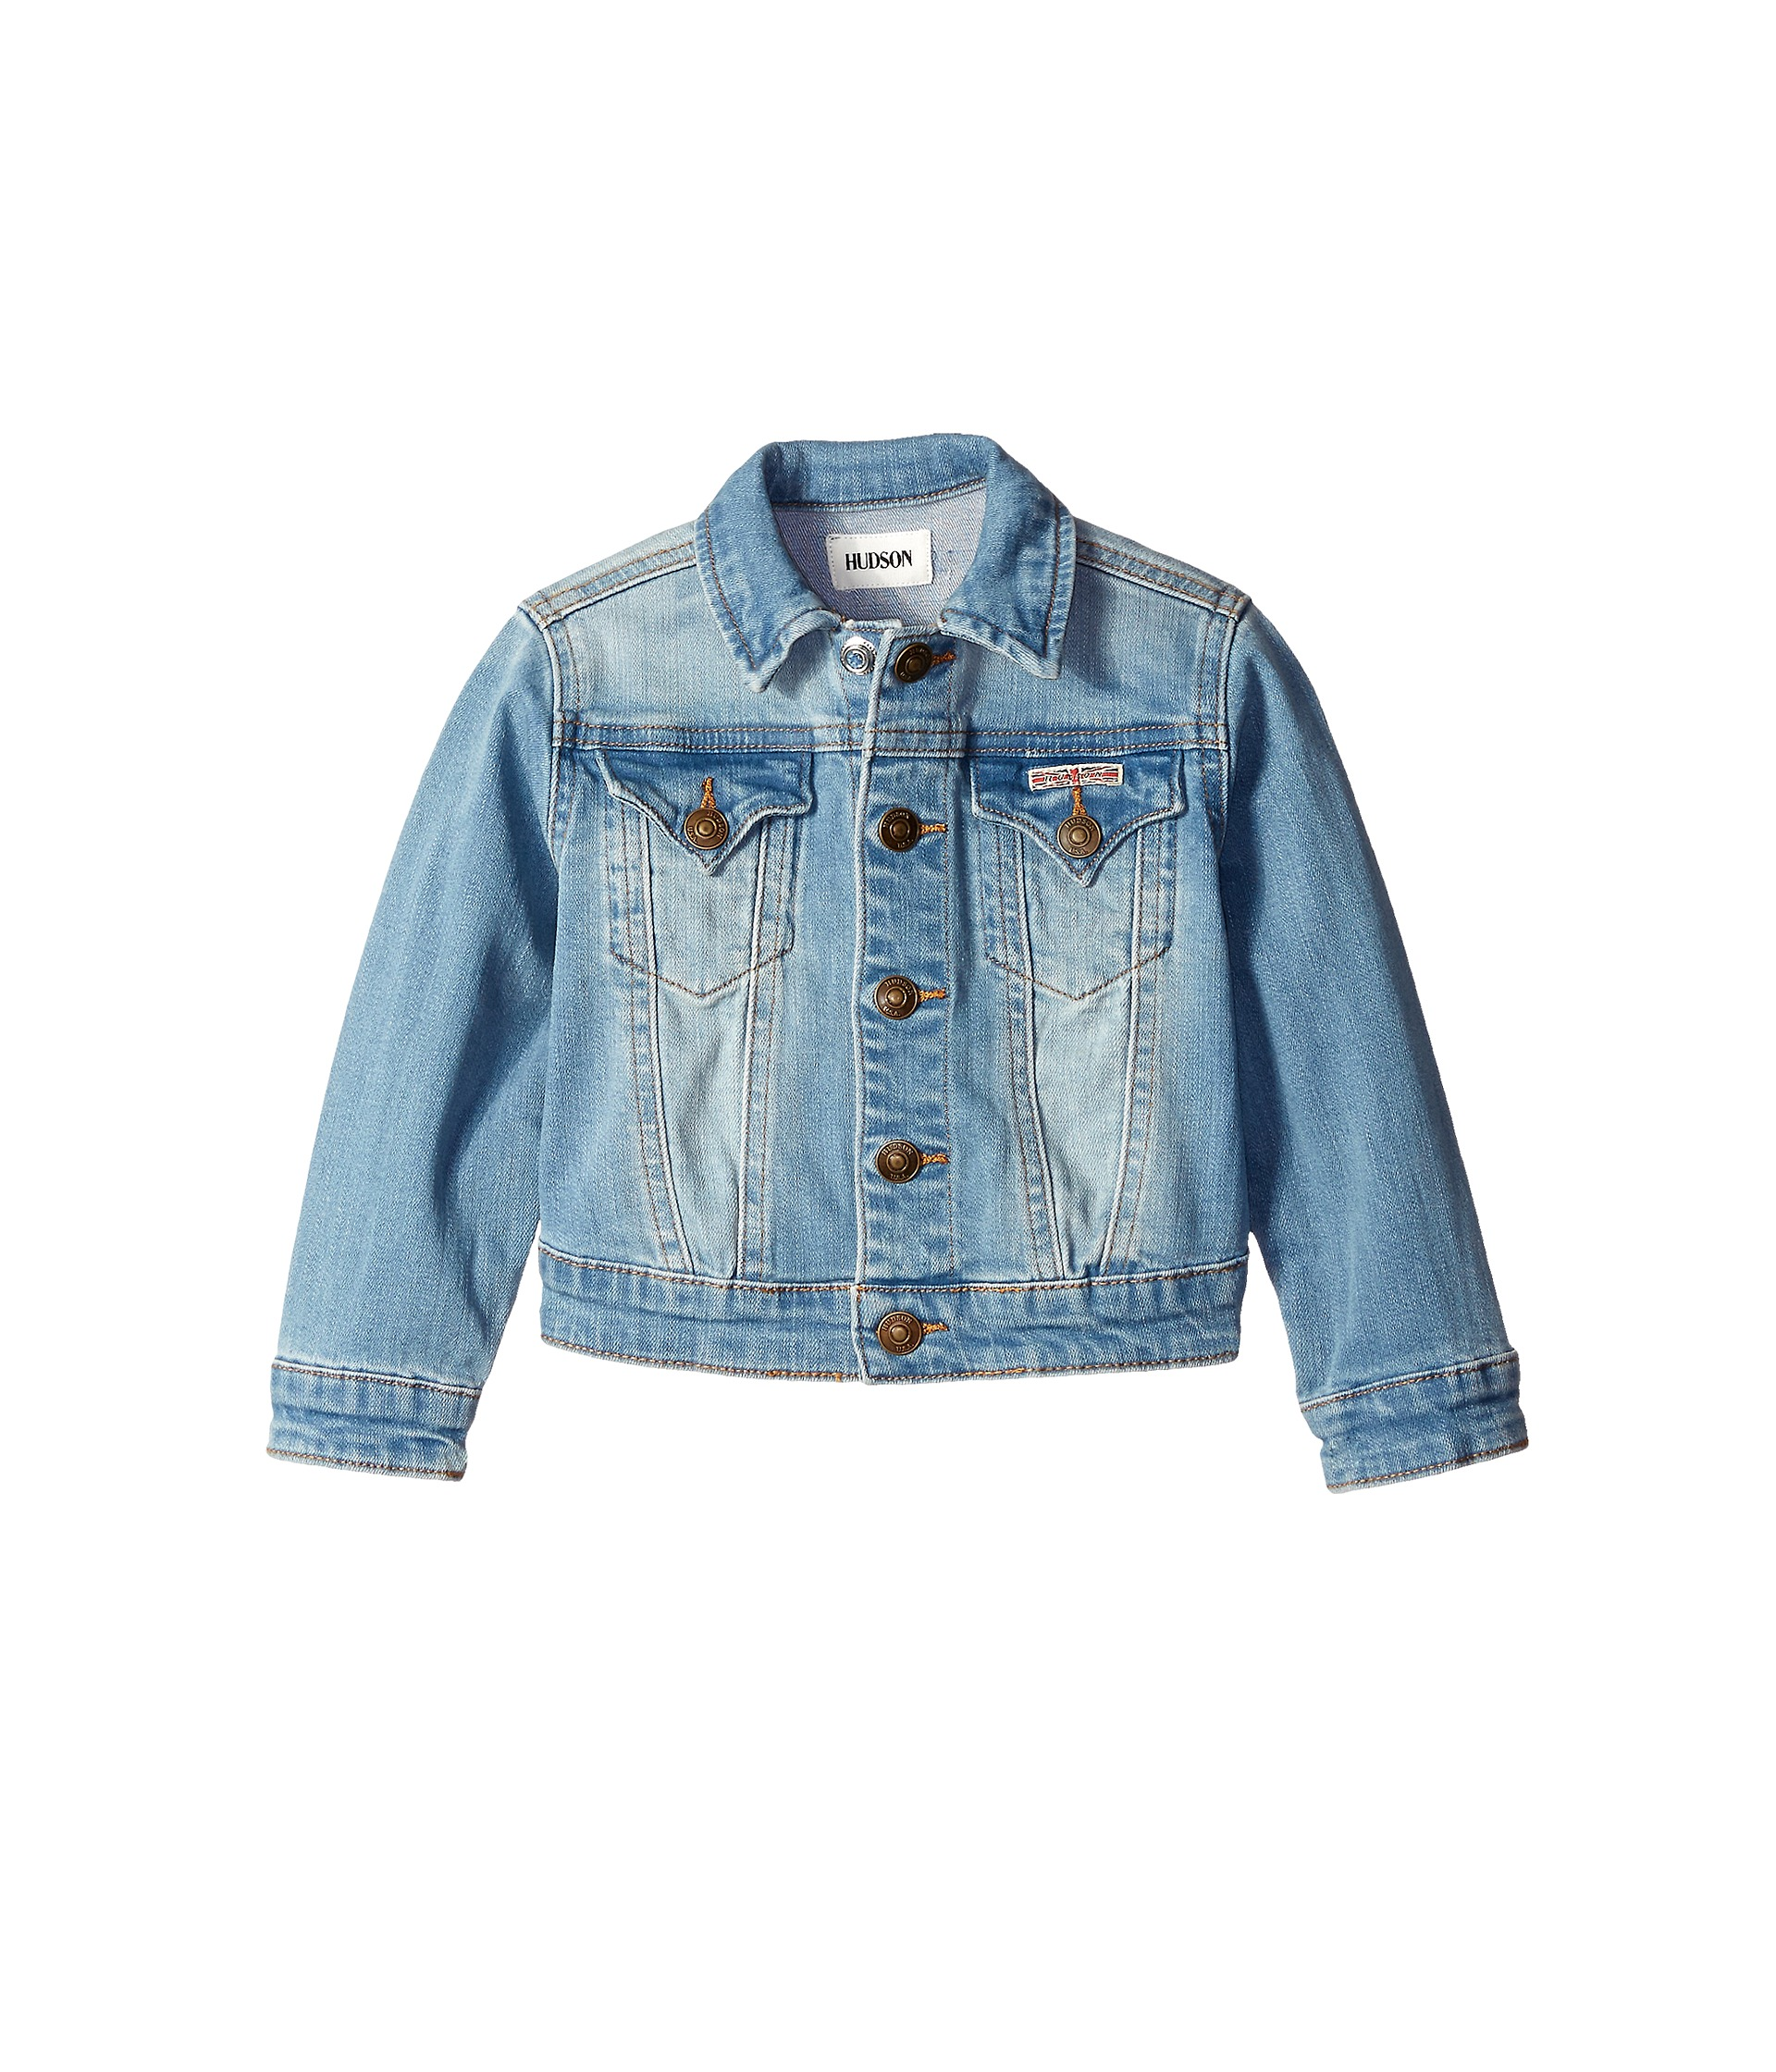 Girls Kids Jean Coat Jacket Outwear Denim Top Button Lace Button Outfits T. Brand New · Unbranded. $ Buy It Now. Free Shipping. + Sold. GAP Kids Girls size small DENIM Jacket Snap Front Snap Cuffs. Pre-Owned. $ Buy It Now. Free Shipping. US Girls Kids Denim Jacket Ruffle Lace Jean Coat Top Clothing Outwear Clothes.